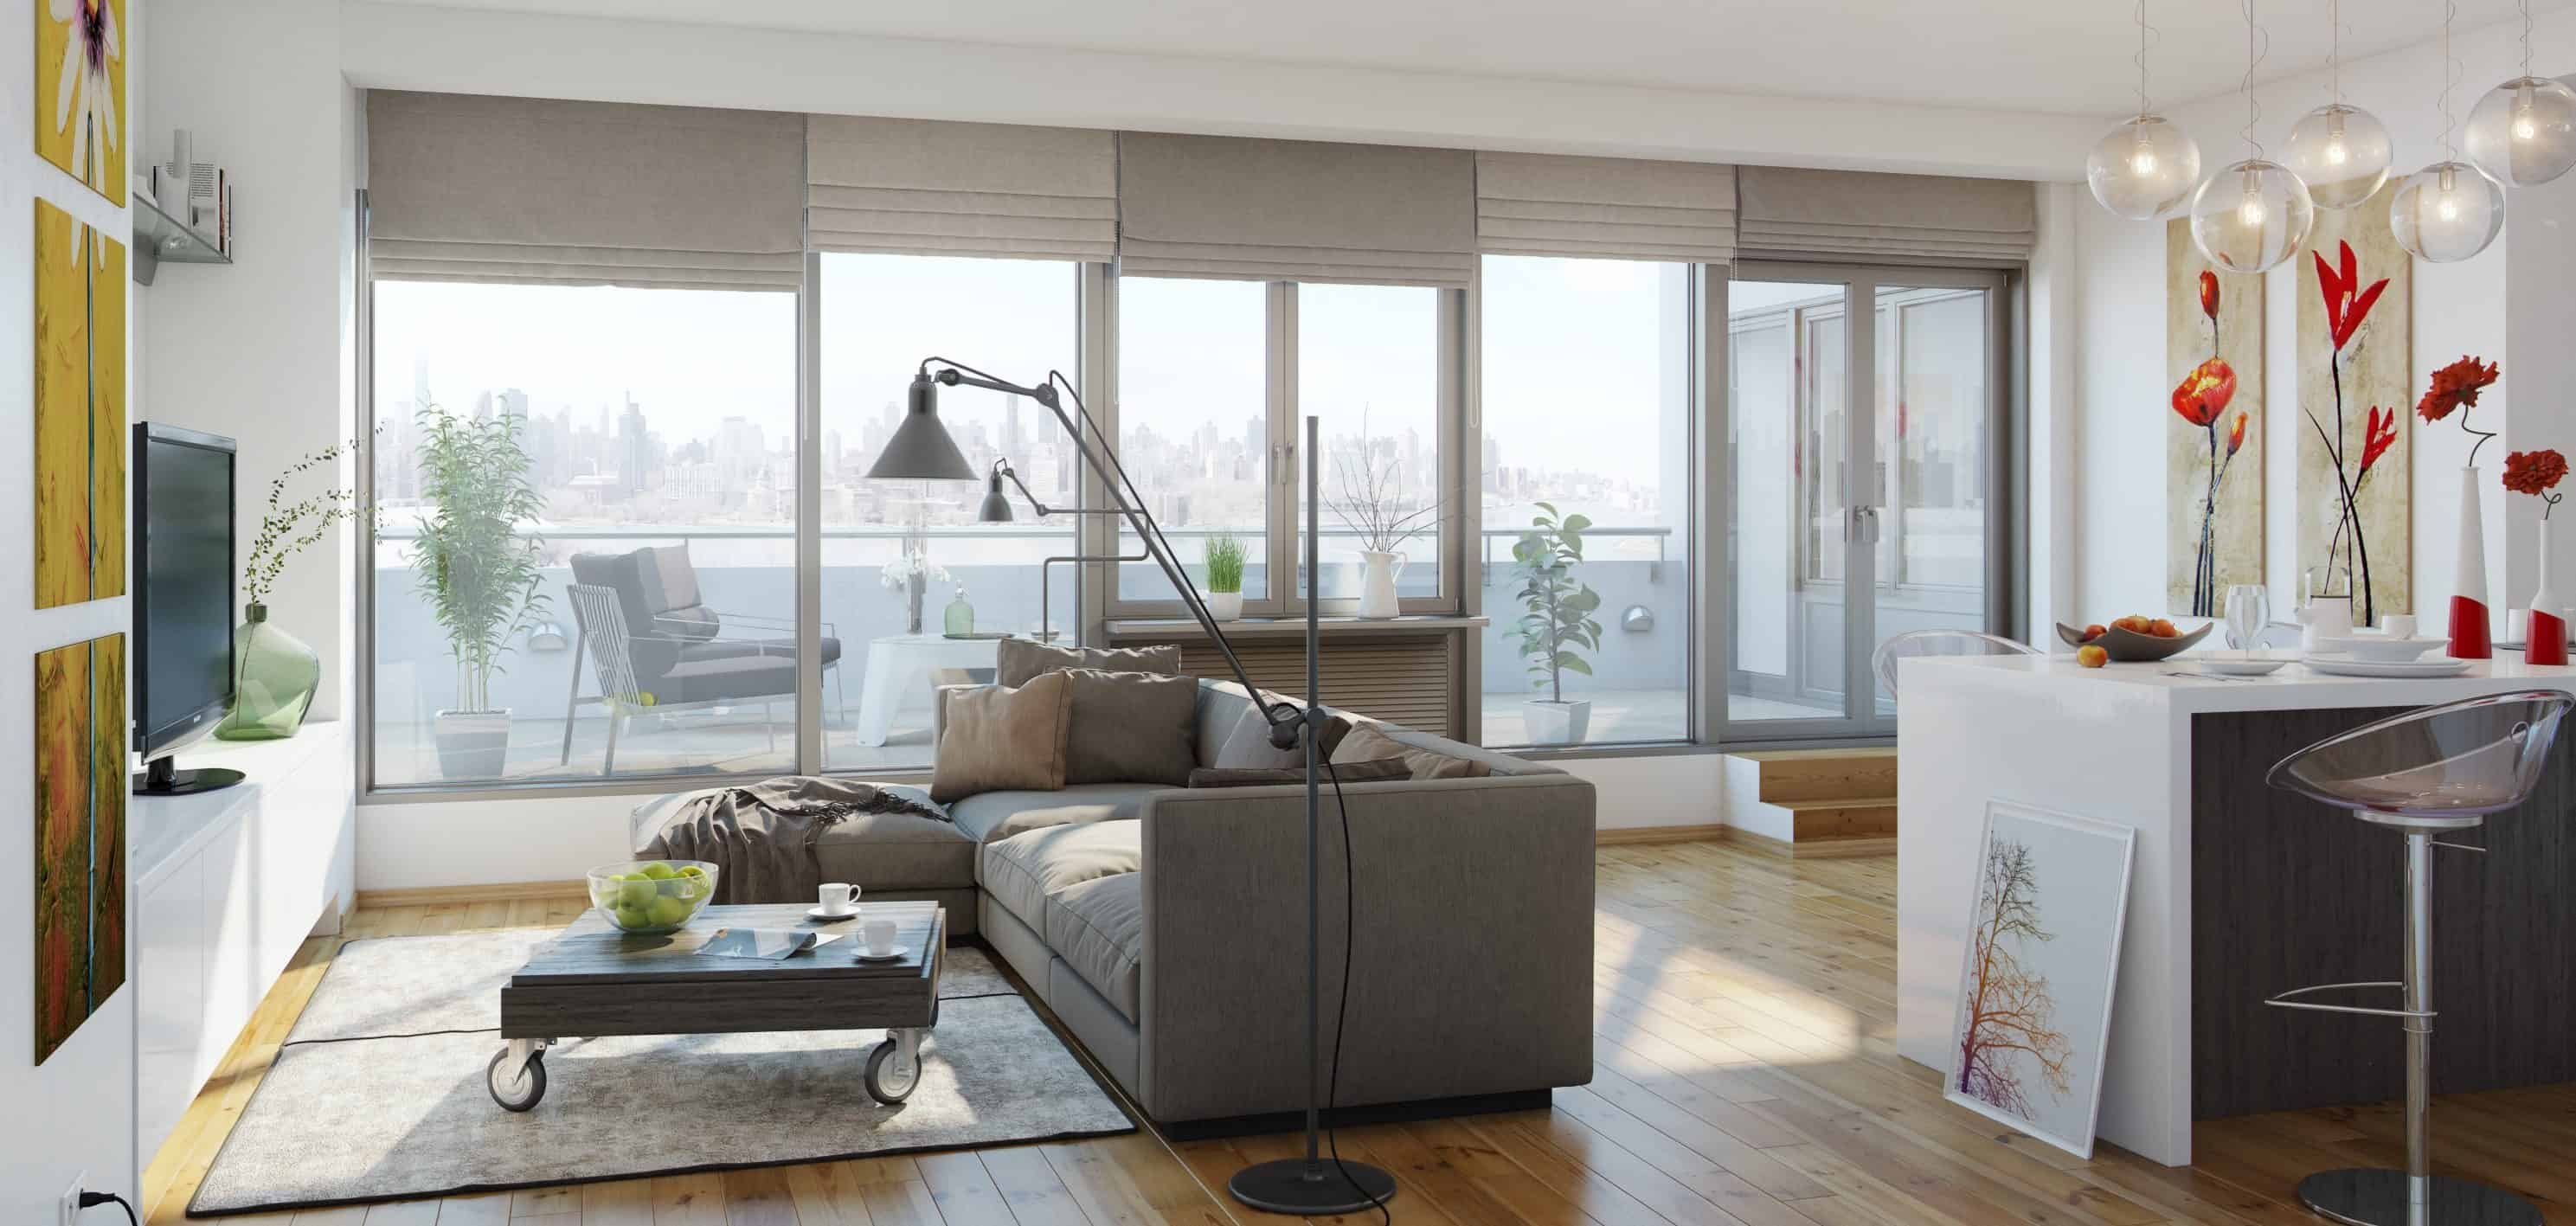 3d render of living room of Vernon Blvd, Astoria, New York. It is an upcoming development by Excel Group.